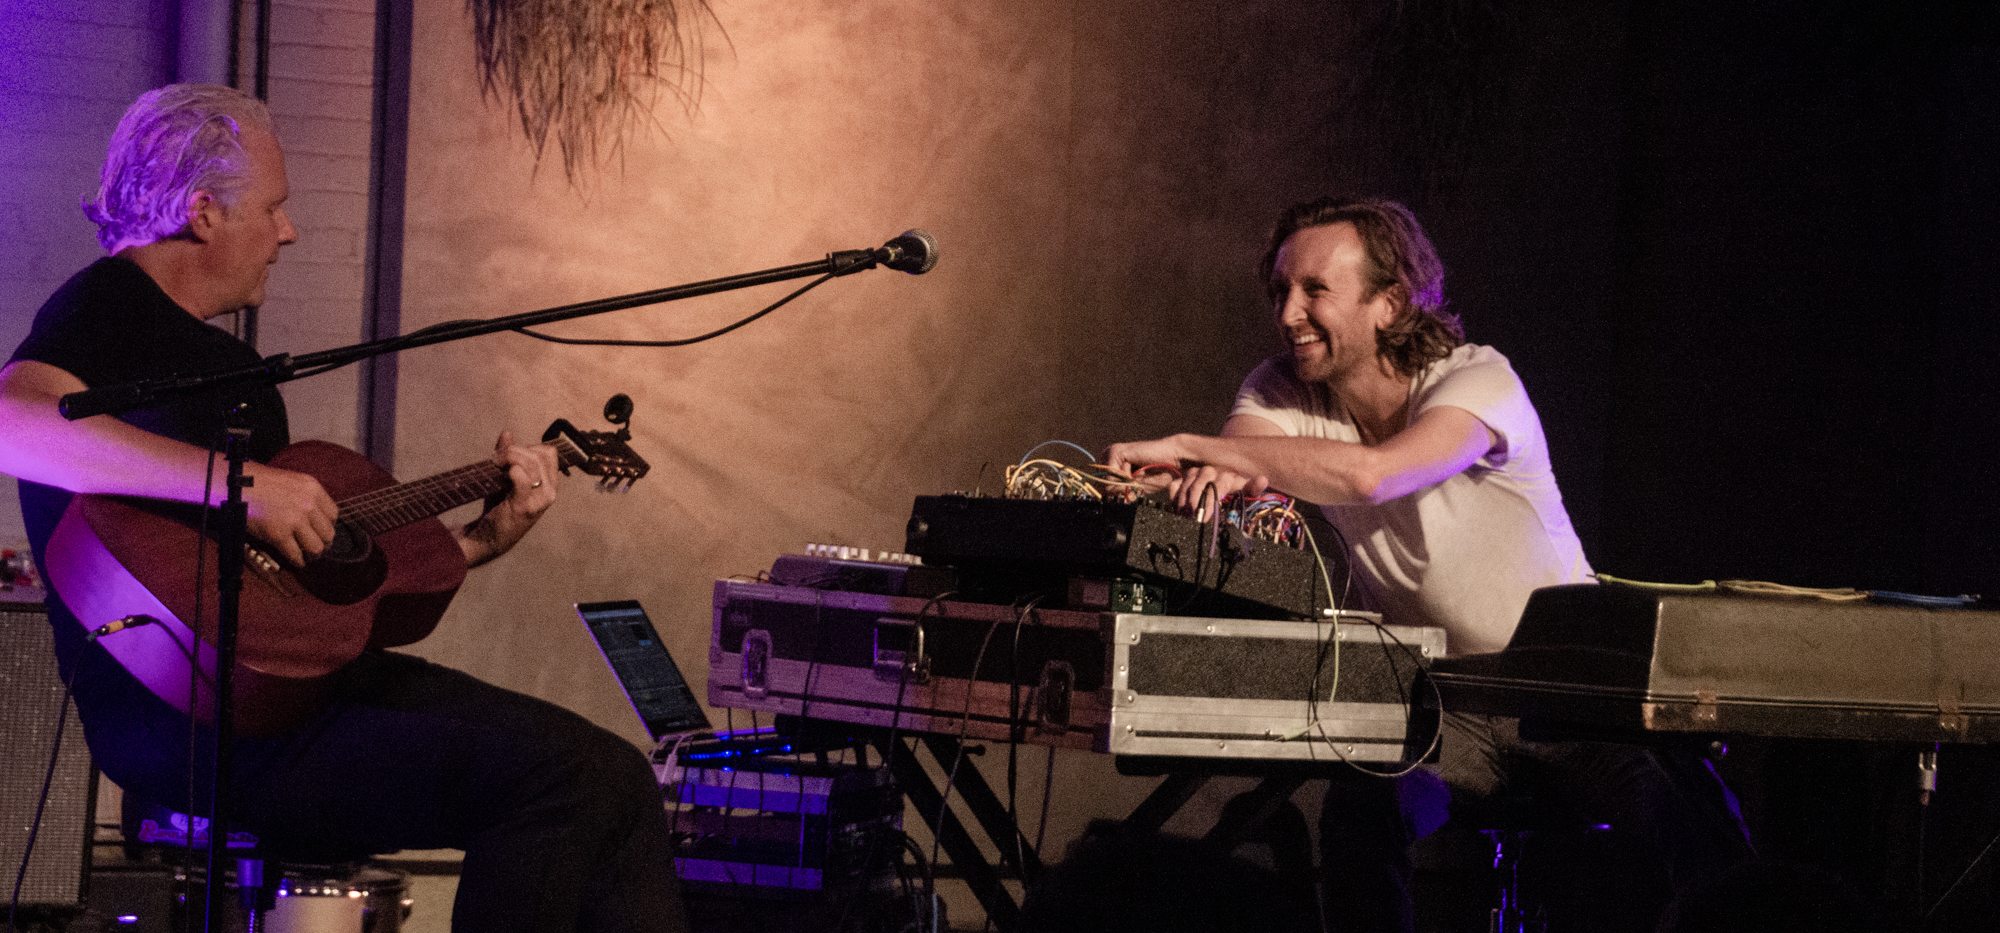 """Rosenau & Sanborn performing """"Bluebird"""" at Colectivo Back Room in Milwaukee, WI - 8/9/19 (Photo by Kevin Hill)"""